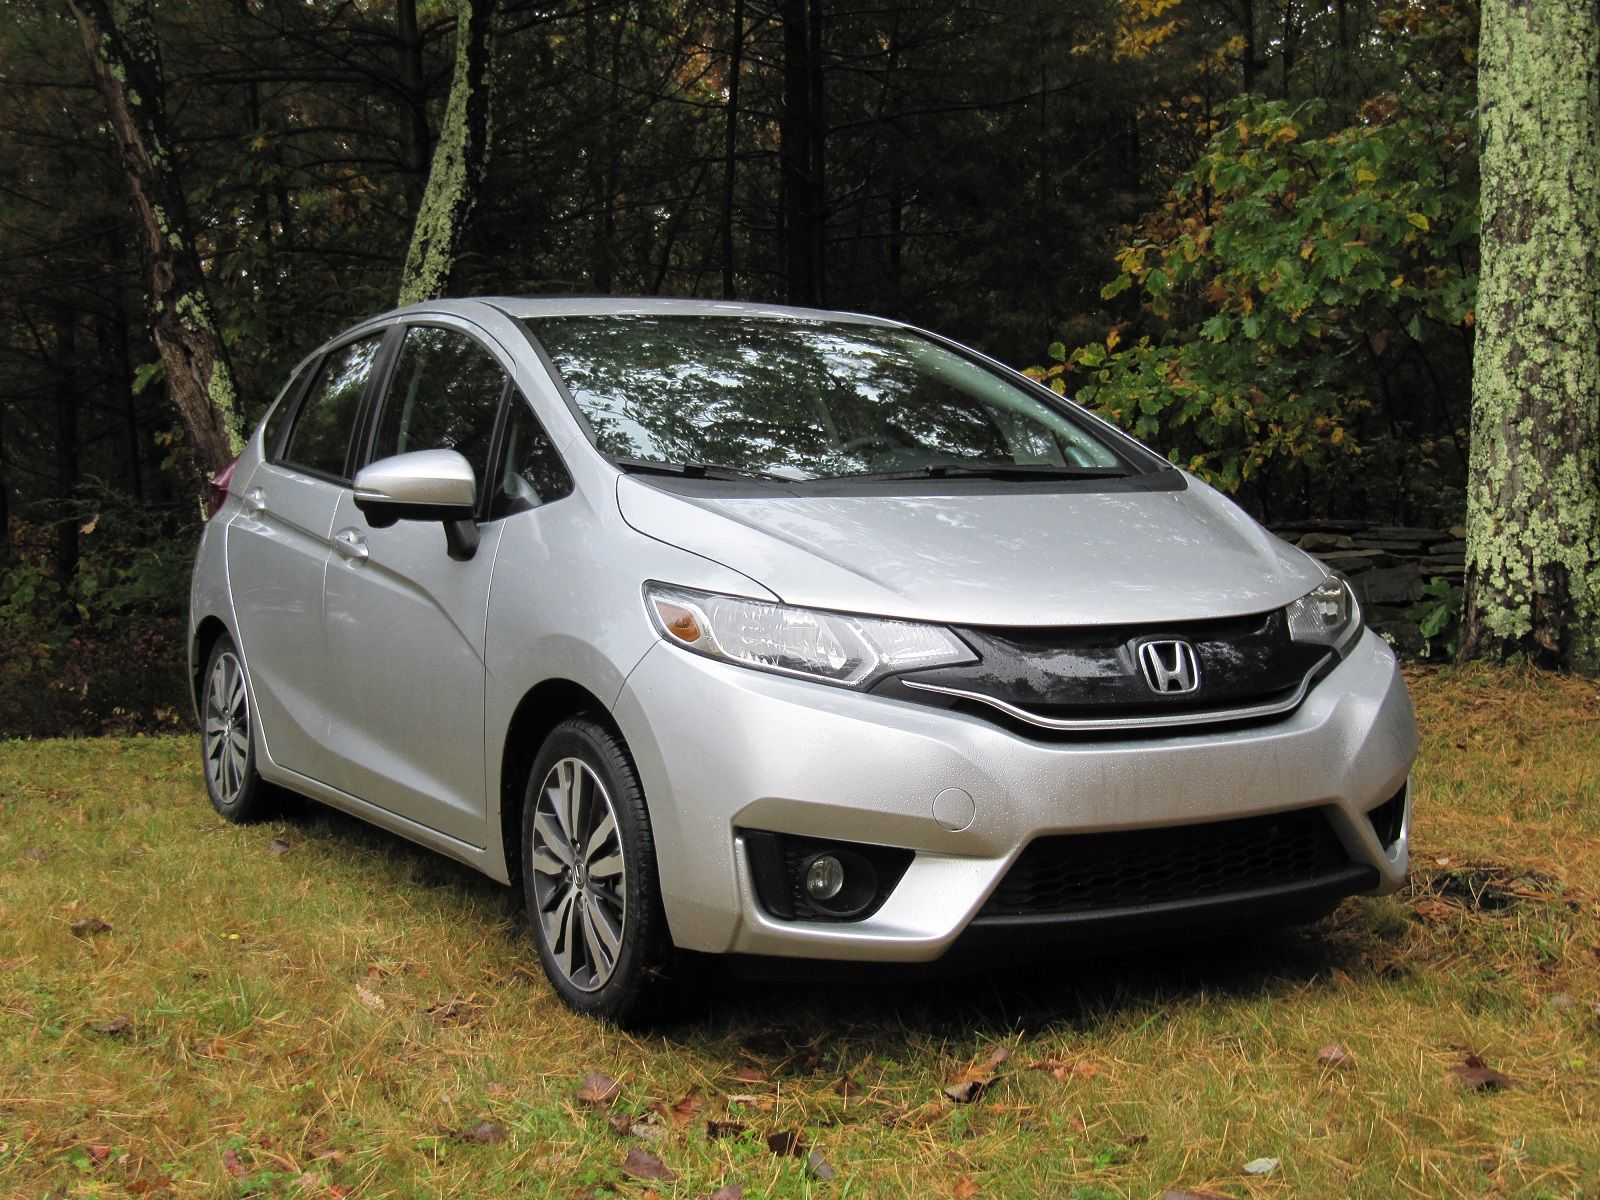 2016 Honda Fit Ex Gas Mileage Di 2020 Honda Fit Hatchback Honda